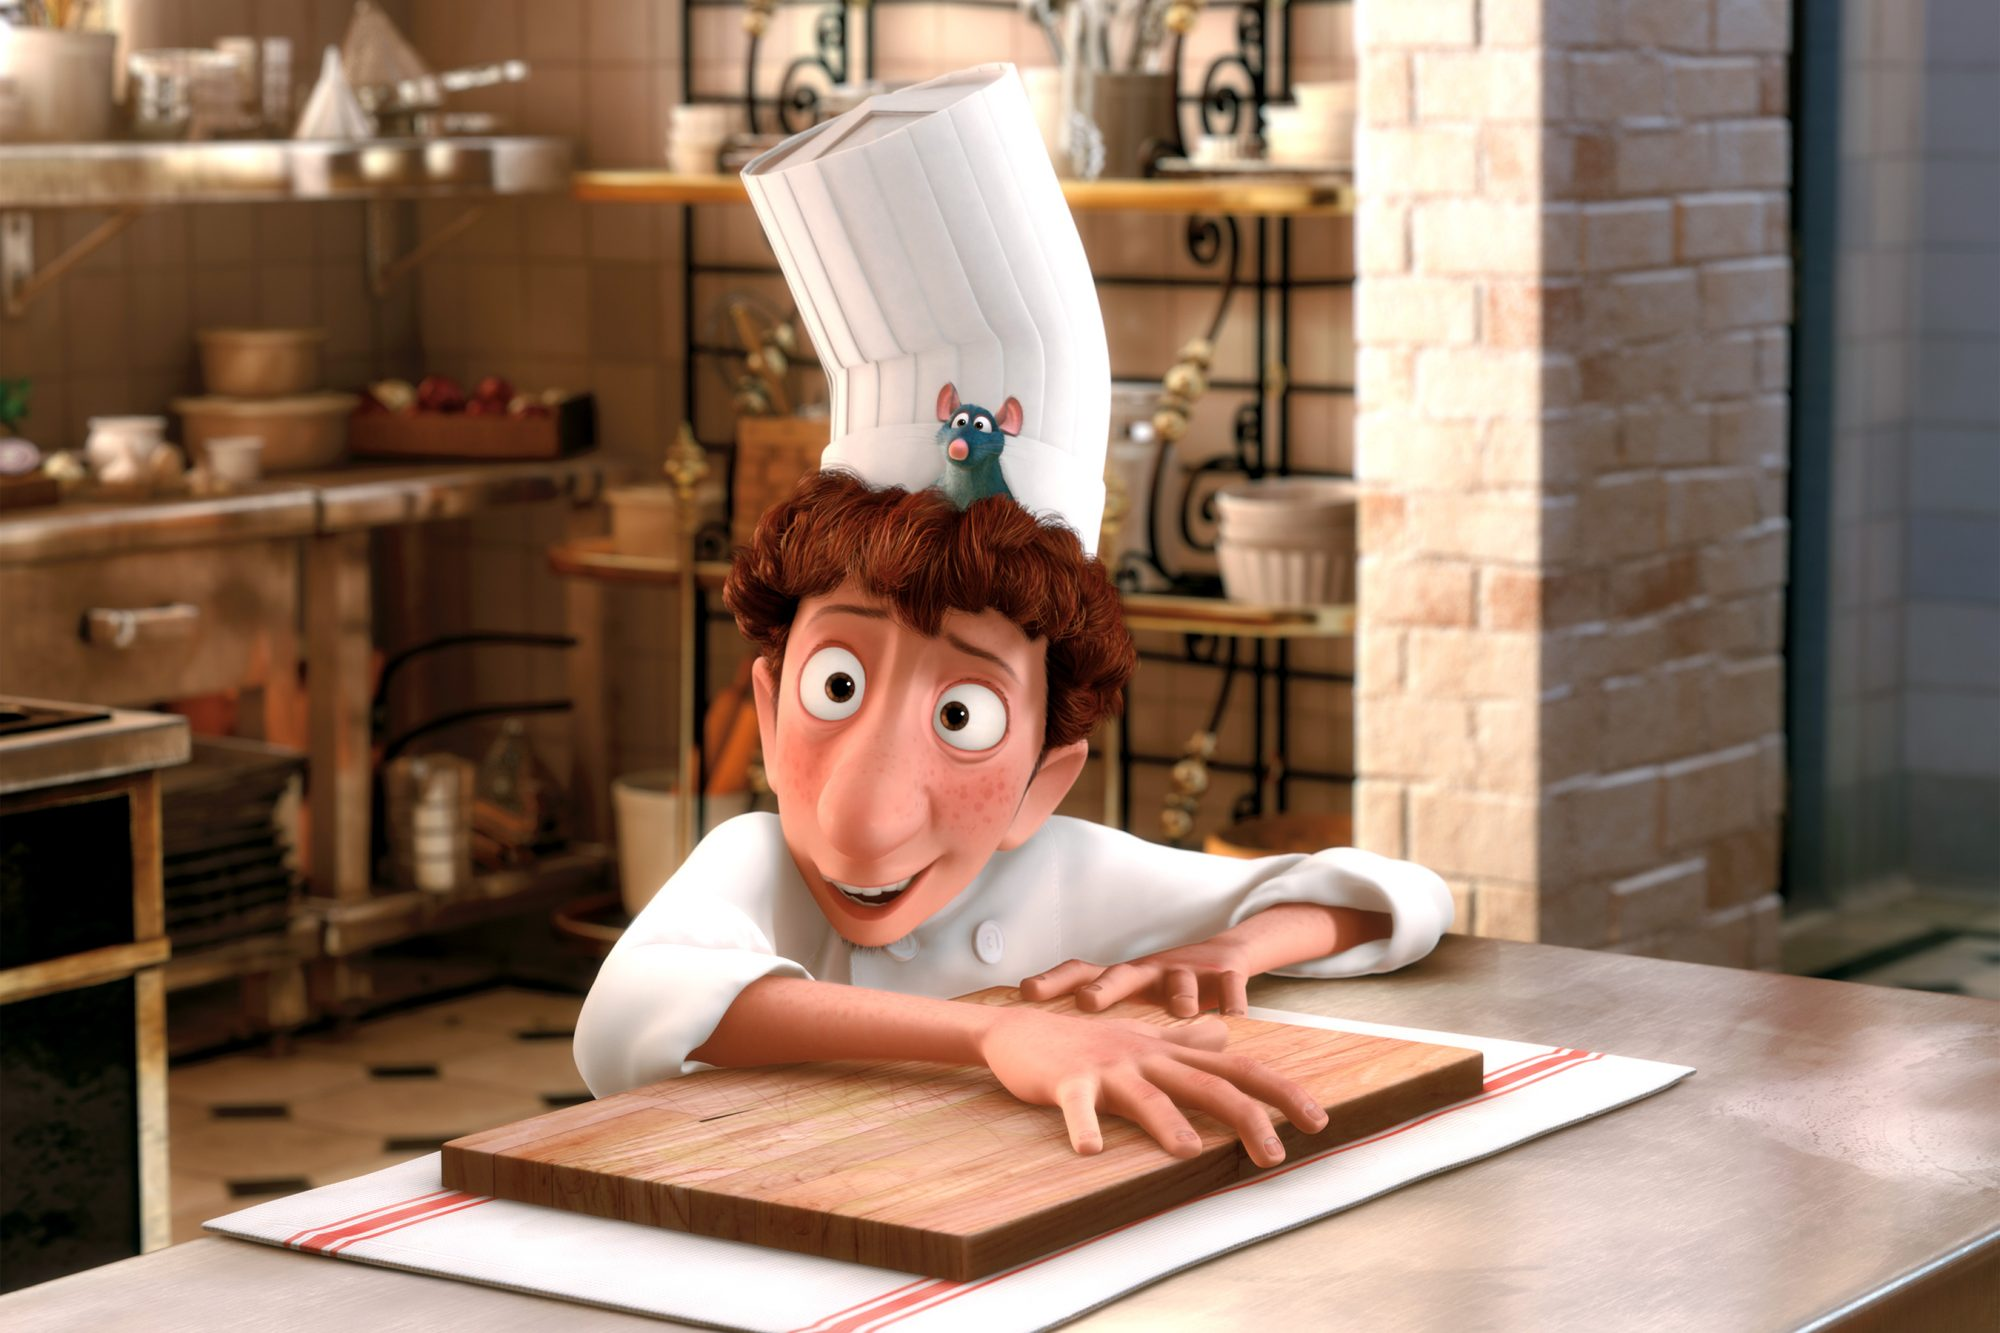 Disney Pixar Ratatouille